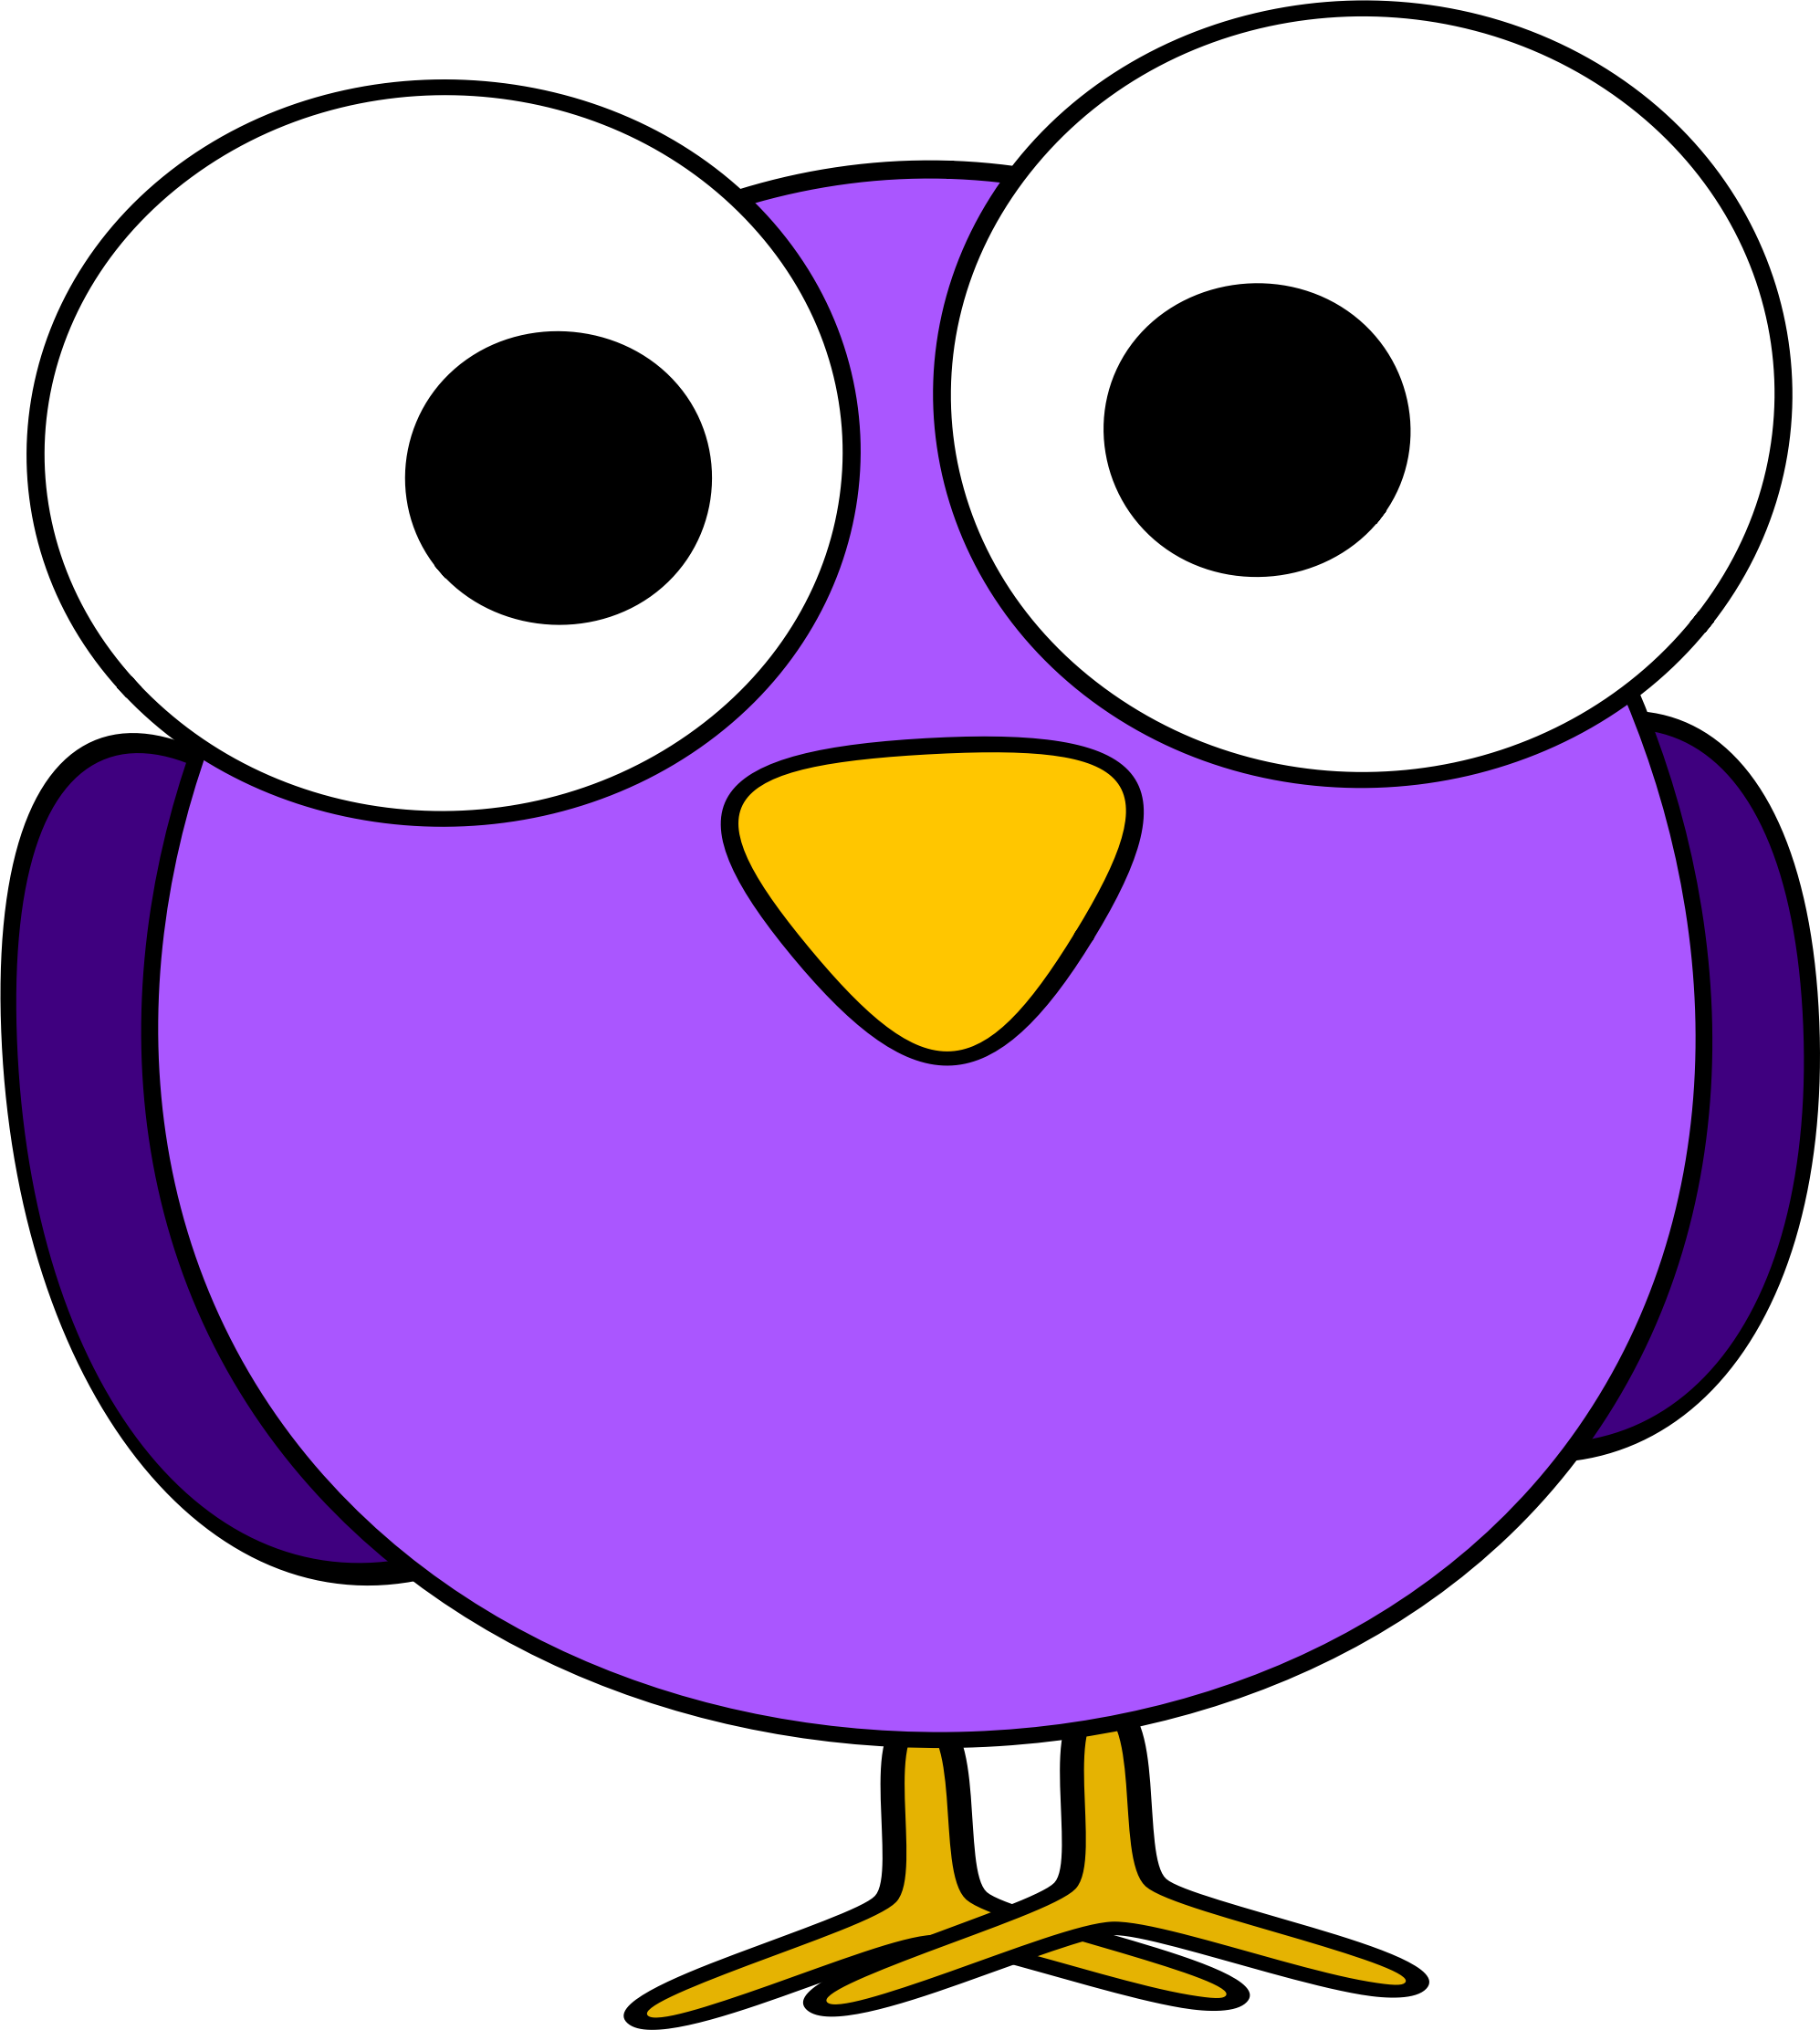 Brds clipart purple Drawings clipart Finch Download Finch